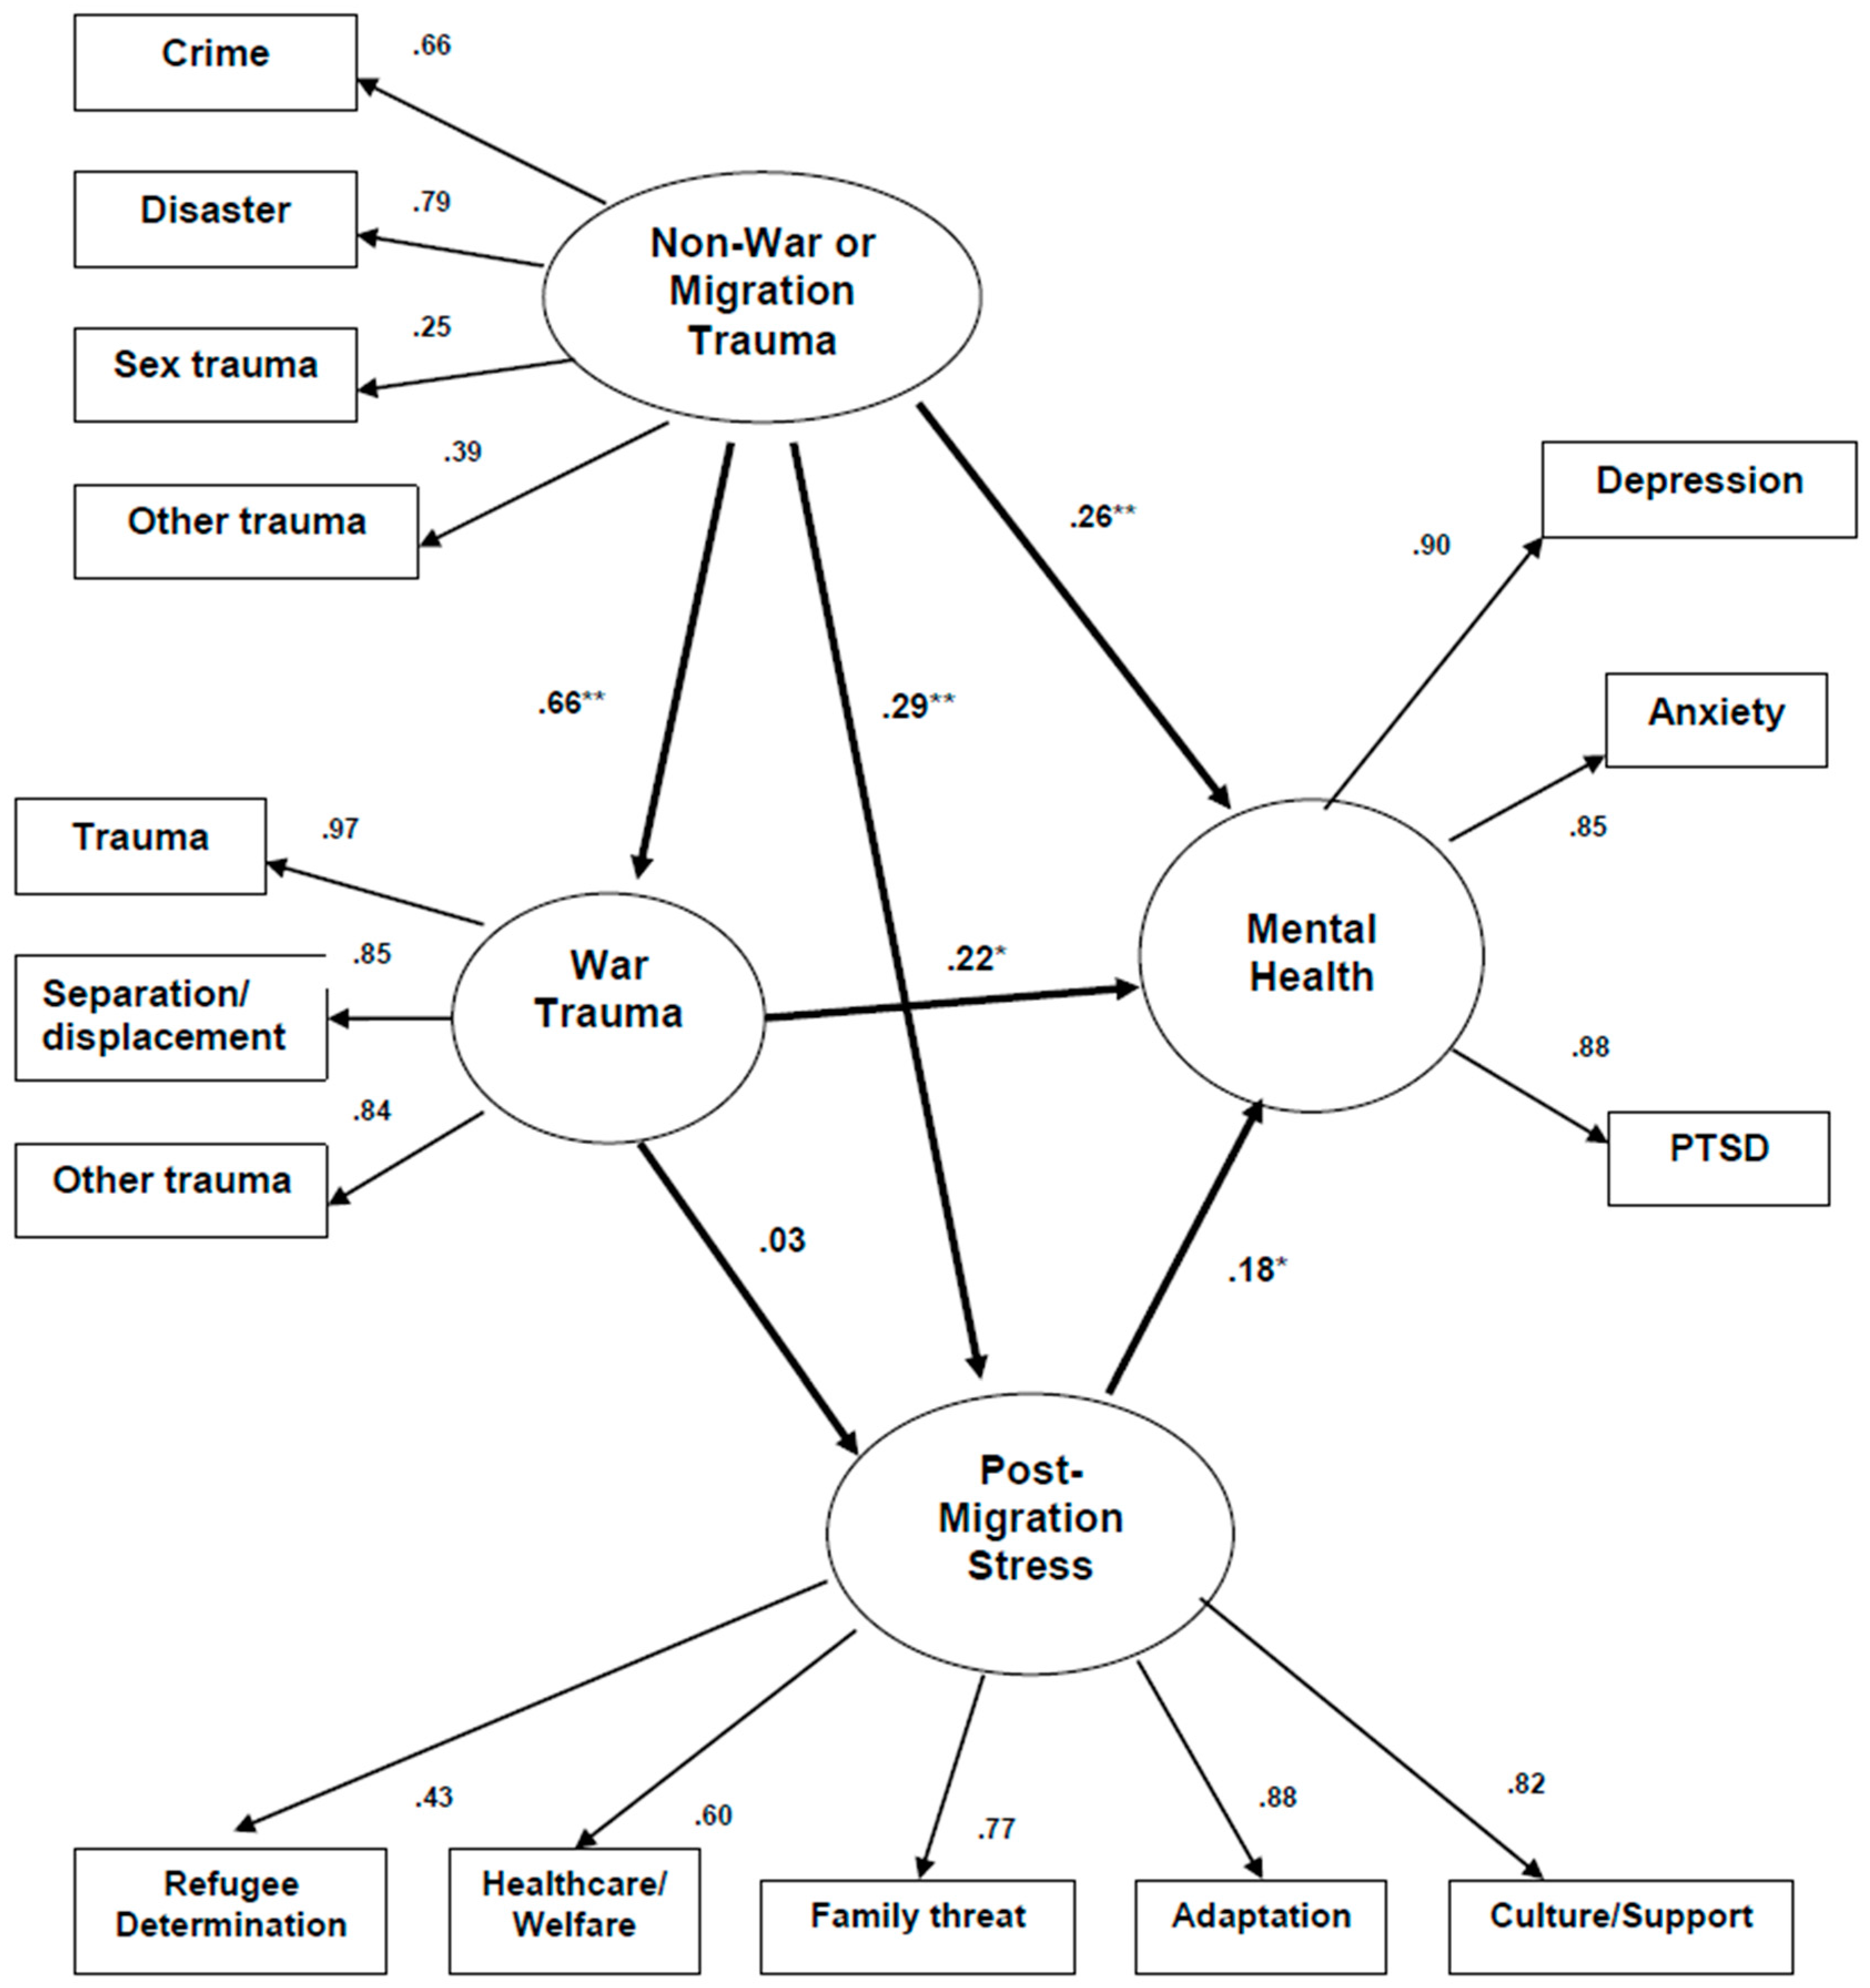 Jcm Free Full Text Mental Health Effects Of Stress Over The Life Hopkins 6 24 Wiring Diagram 07 00025 G002